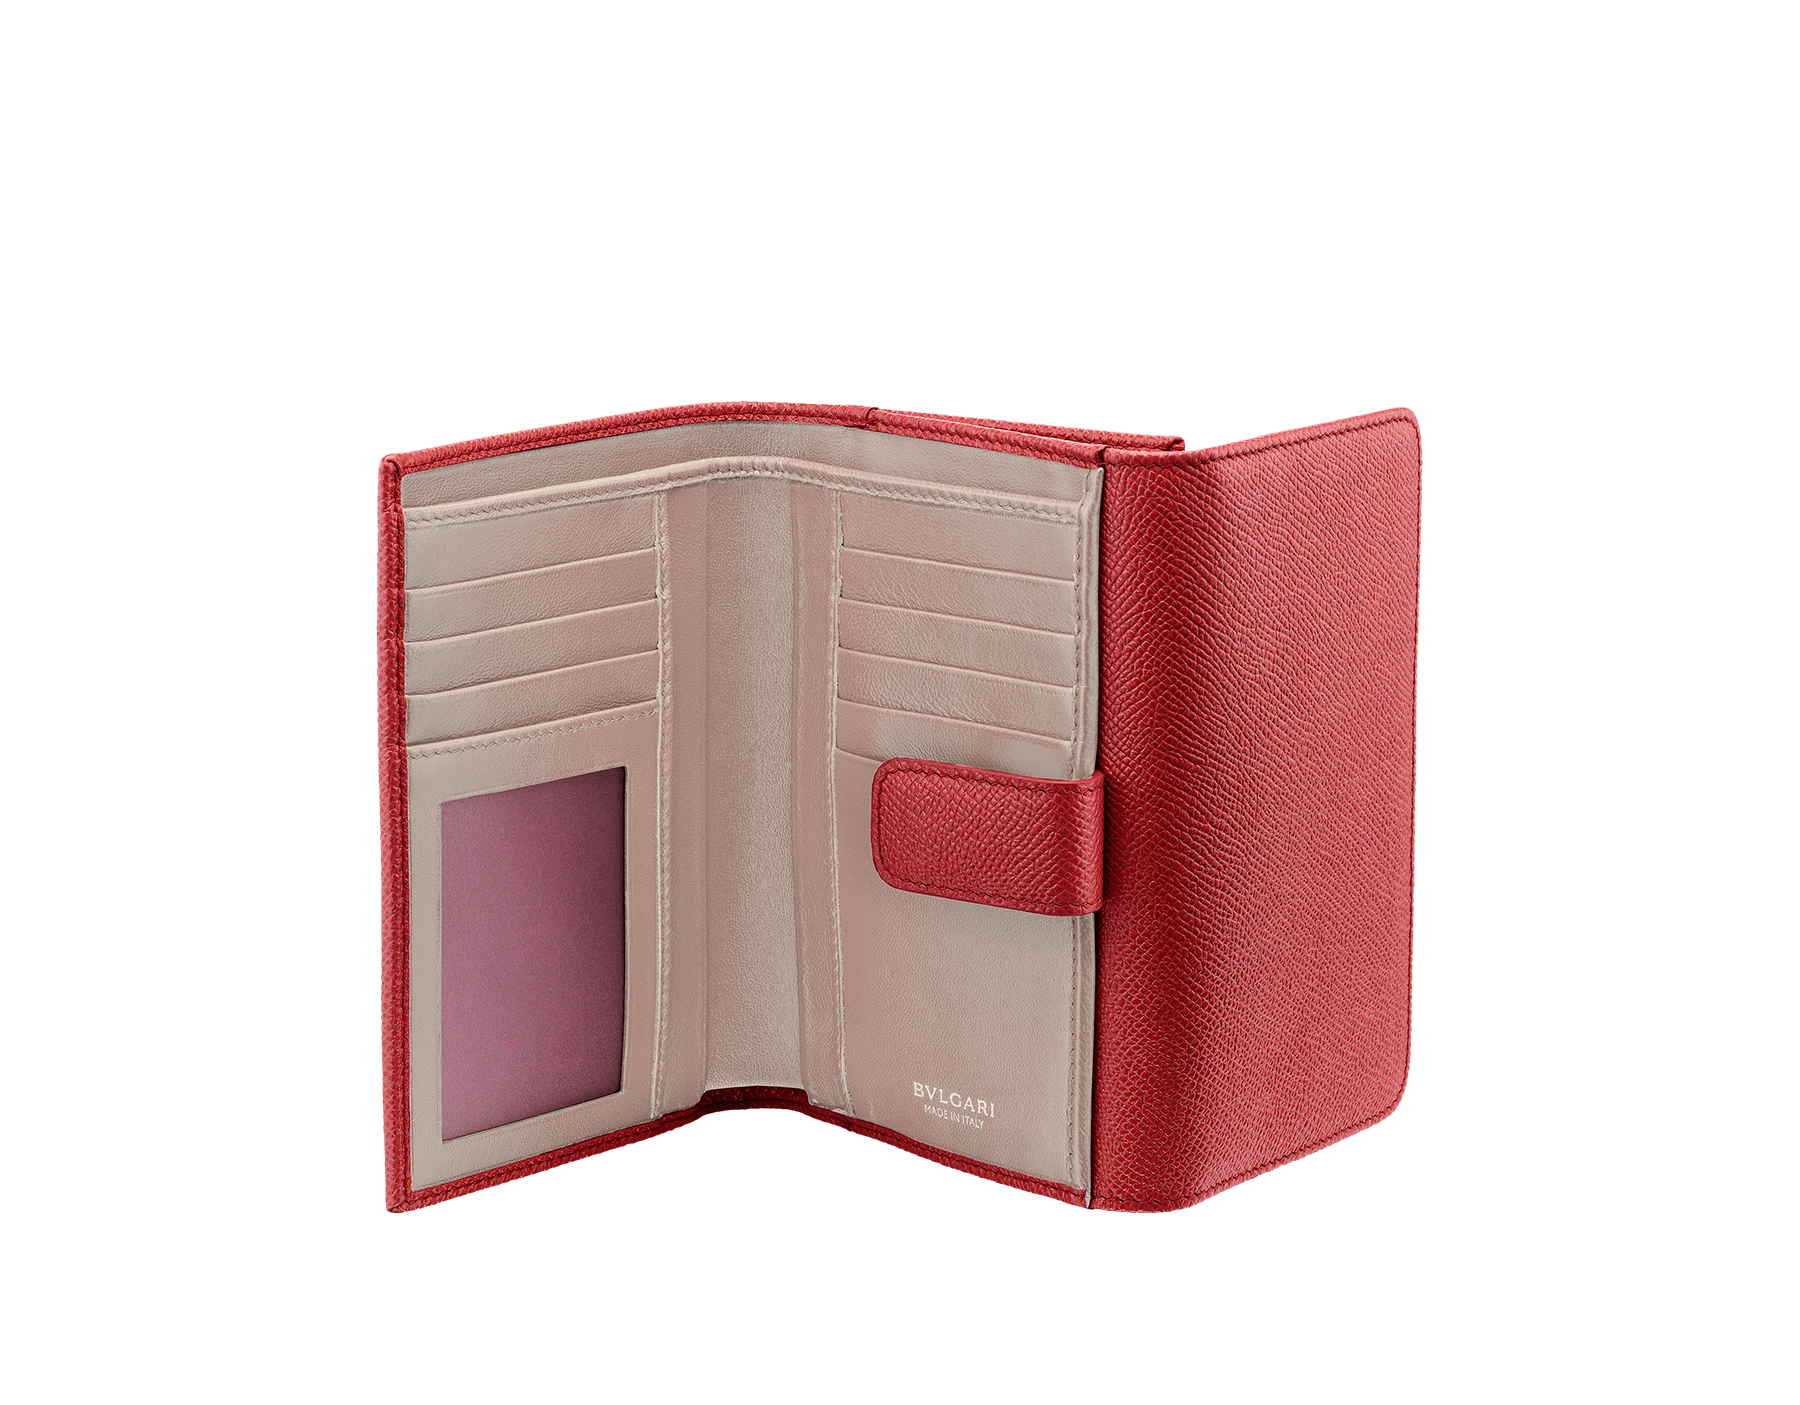 Compact pochette in ruby red bright grain calf leather, desert quartz nappa and fuxia nappa lining. Brass light gold plated hardware and iconic BVLGARI BVLGARI closure clip. 281454 image 2